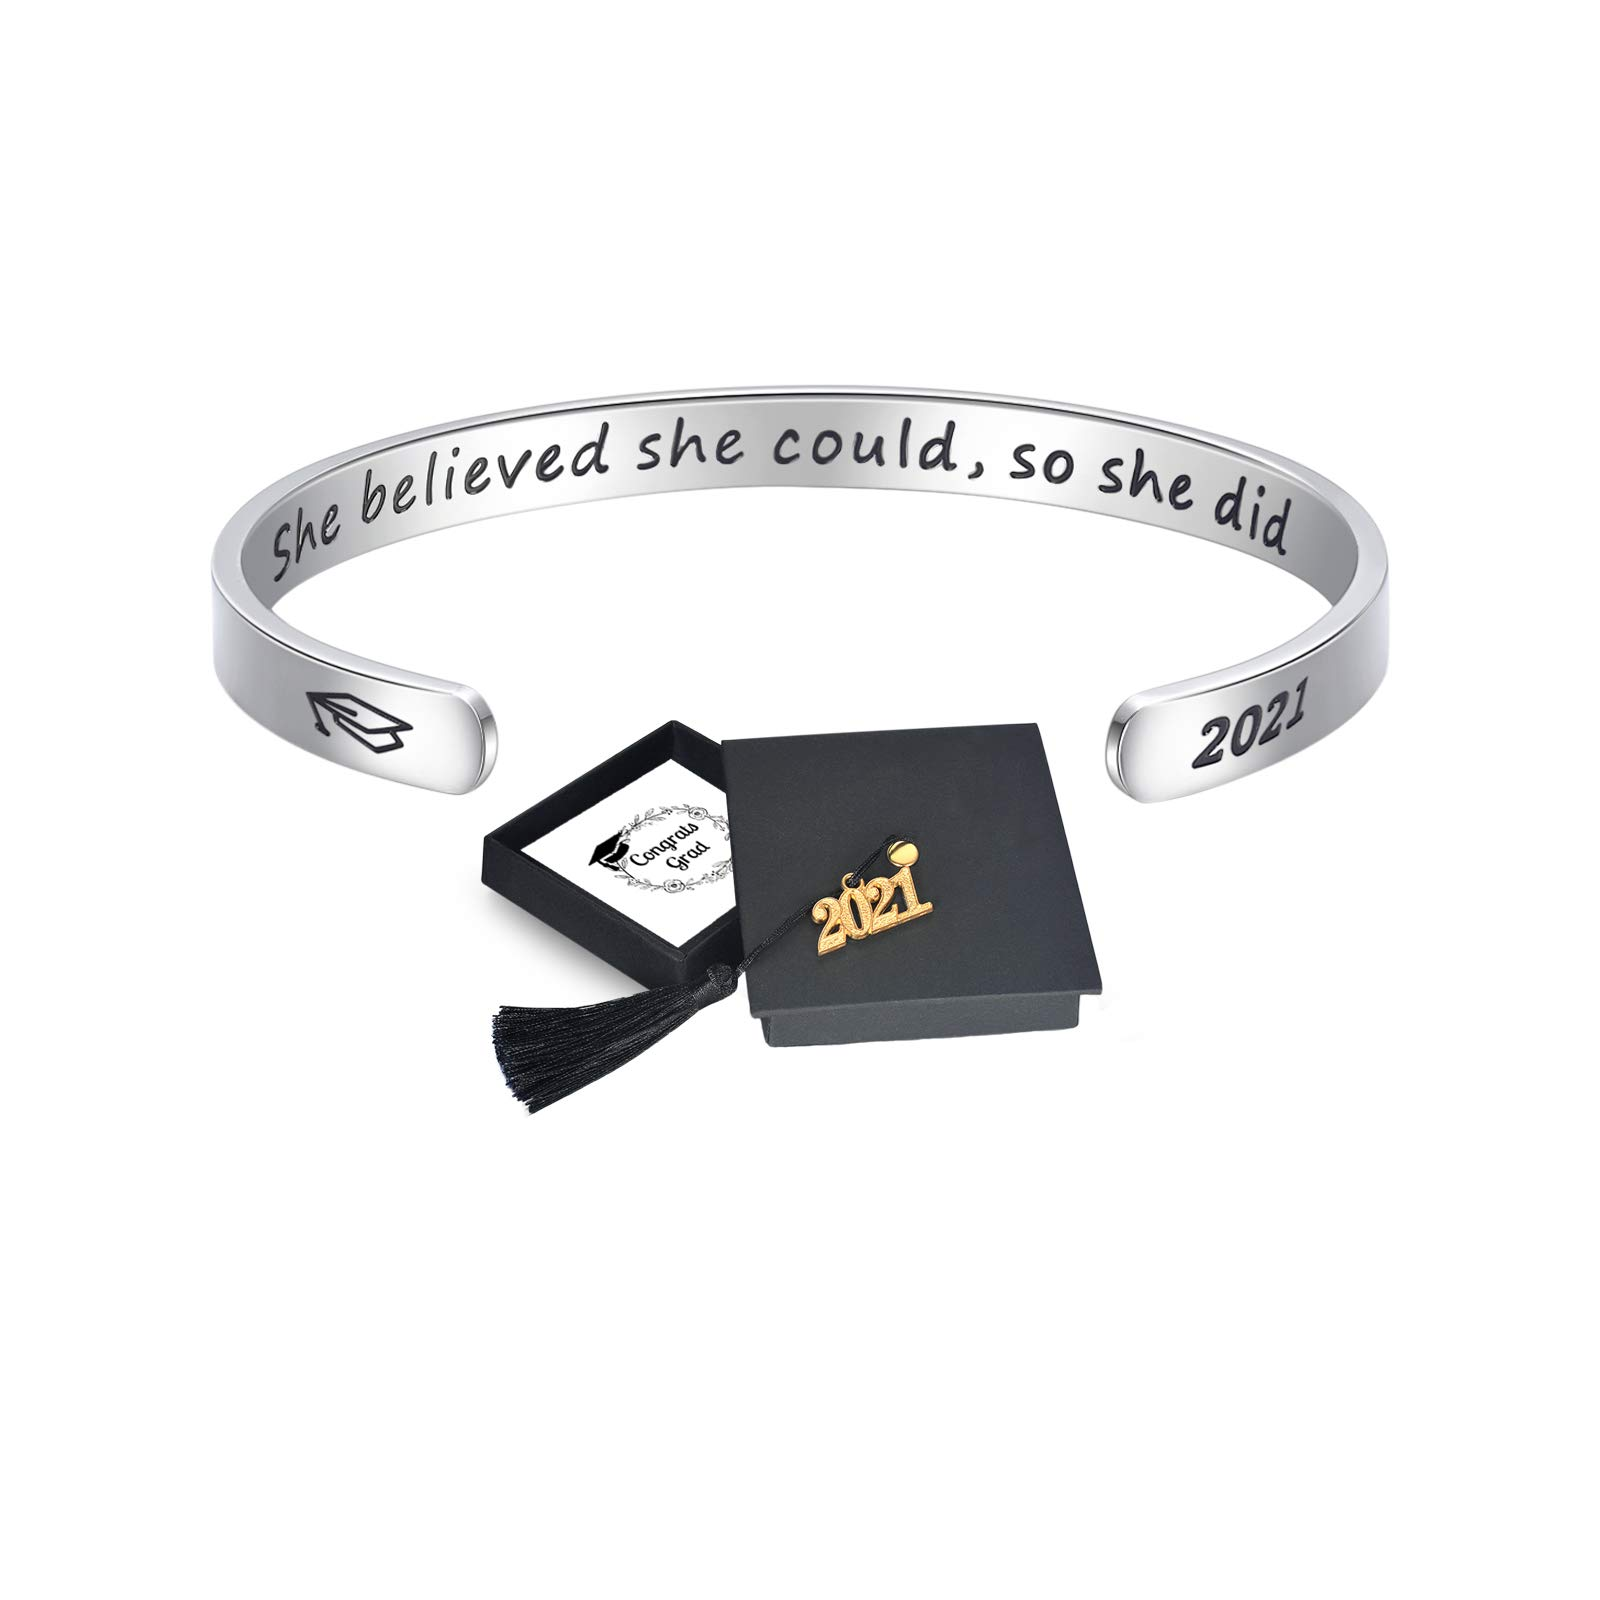 EPIRORA 2021 Inspirational Graduation Gifts for Her Him | She Believe She Could so She Did Cuff Bracelet, Graduation Cap Gift Box Cards for Graduates